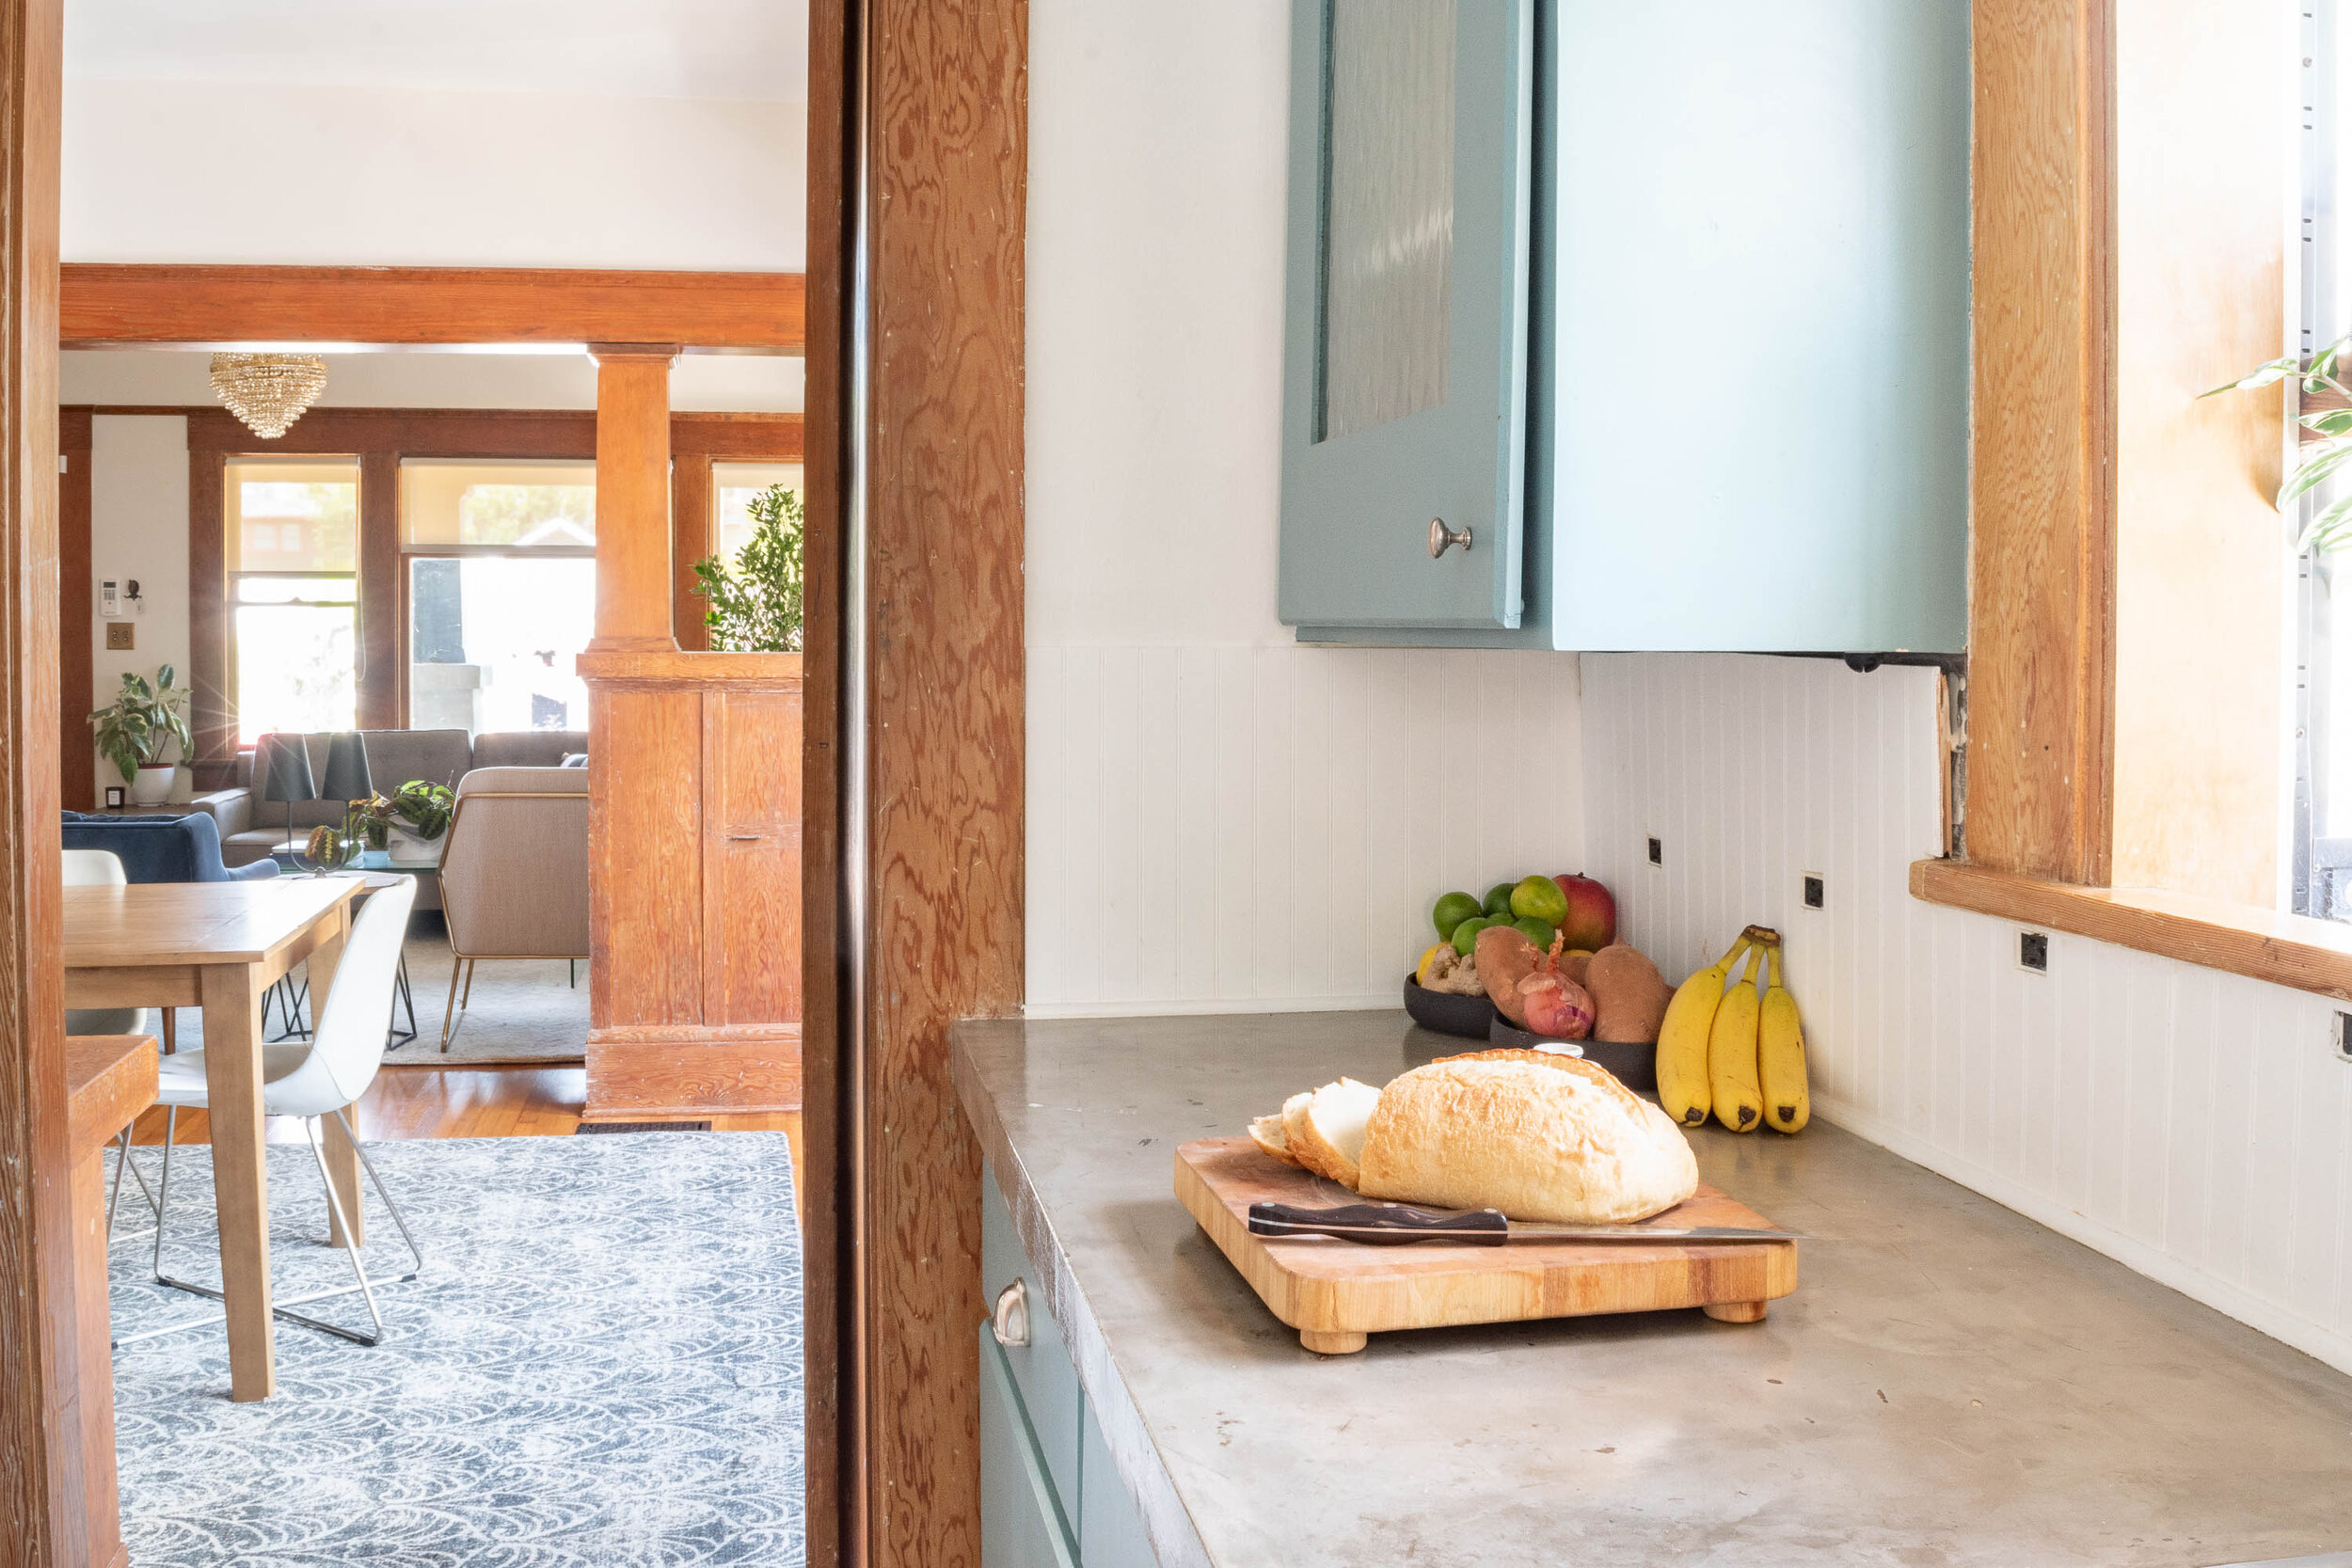 The Gold Hive $600 Kitchen Makeover Craftsman Bungalow Retro Style-0162.jpg